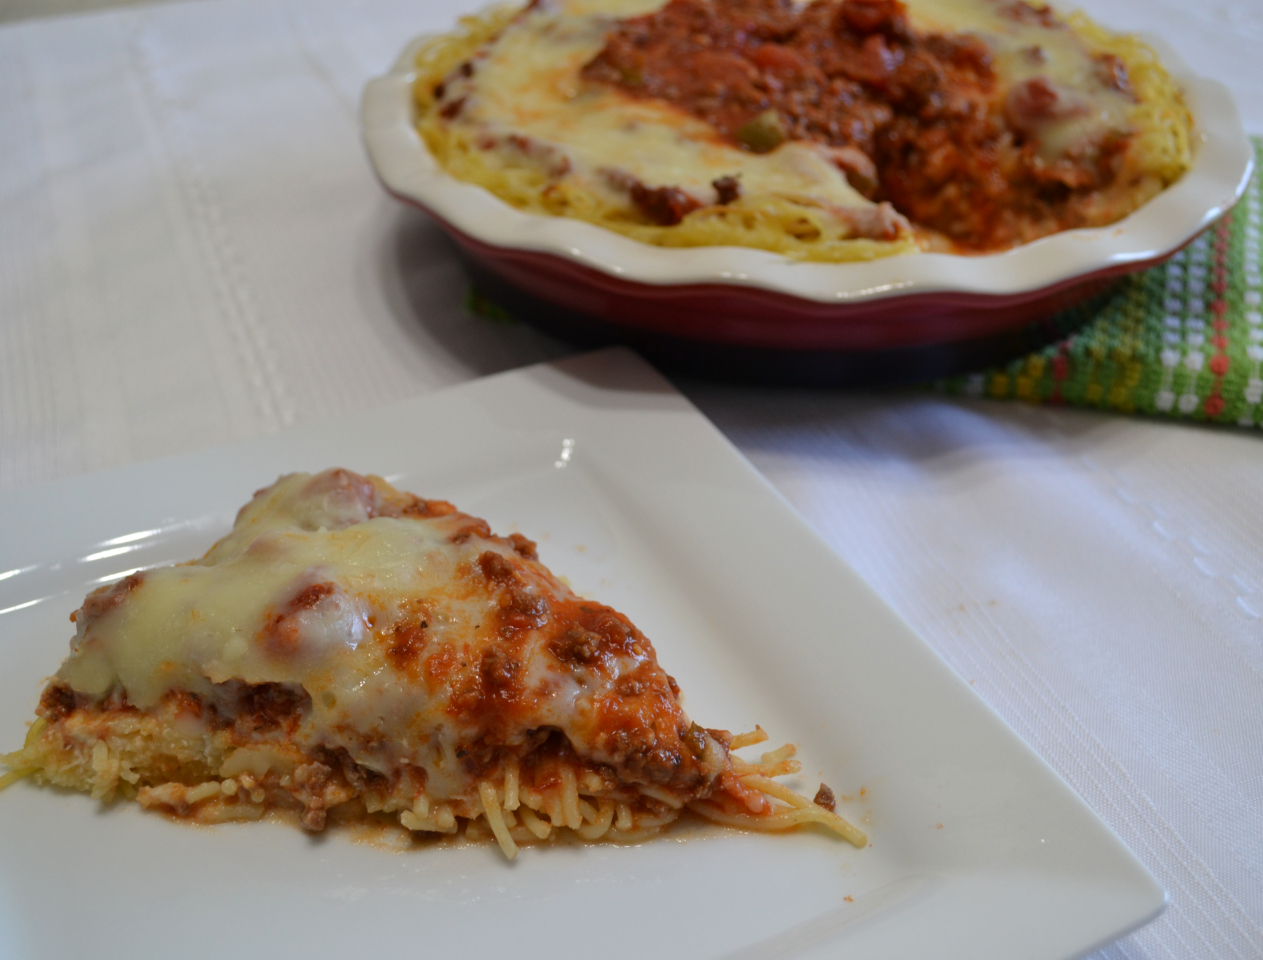 Cheesy Spaghetti Pie is baked in a deep dish pie plate with a crust of spaghetti,a layer of ricotta,then topped with homemade pasta sauce and mozzarella cheese.